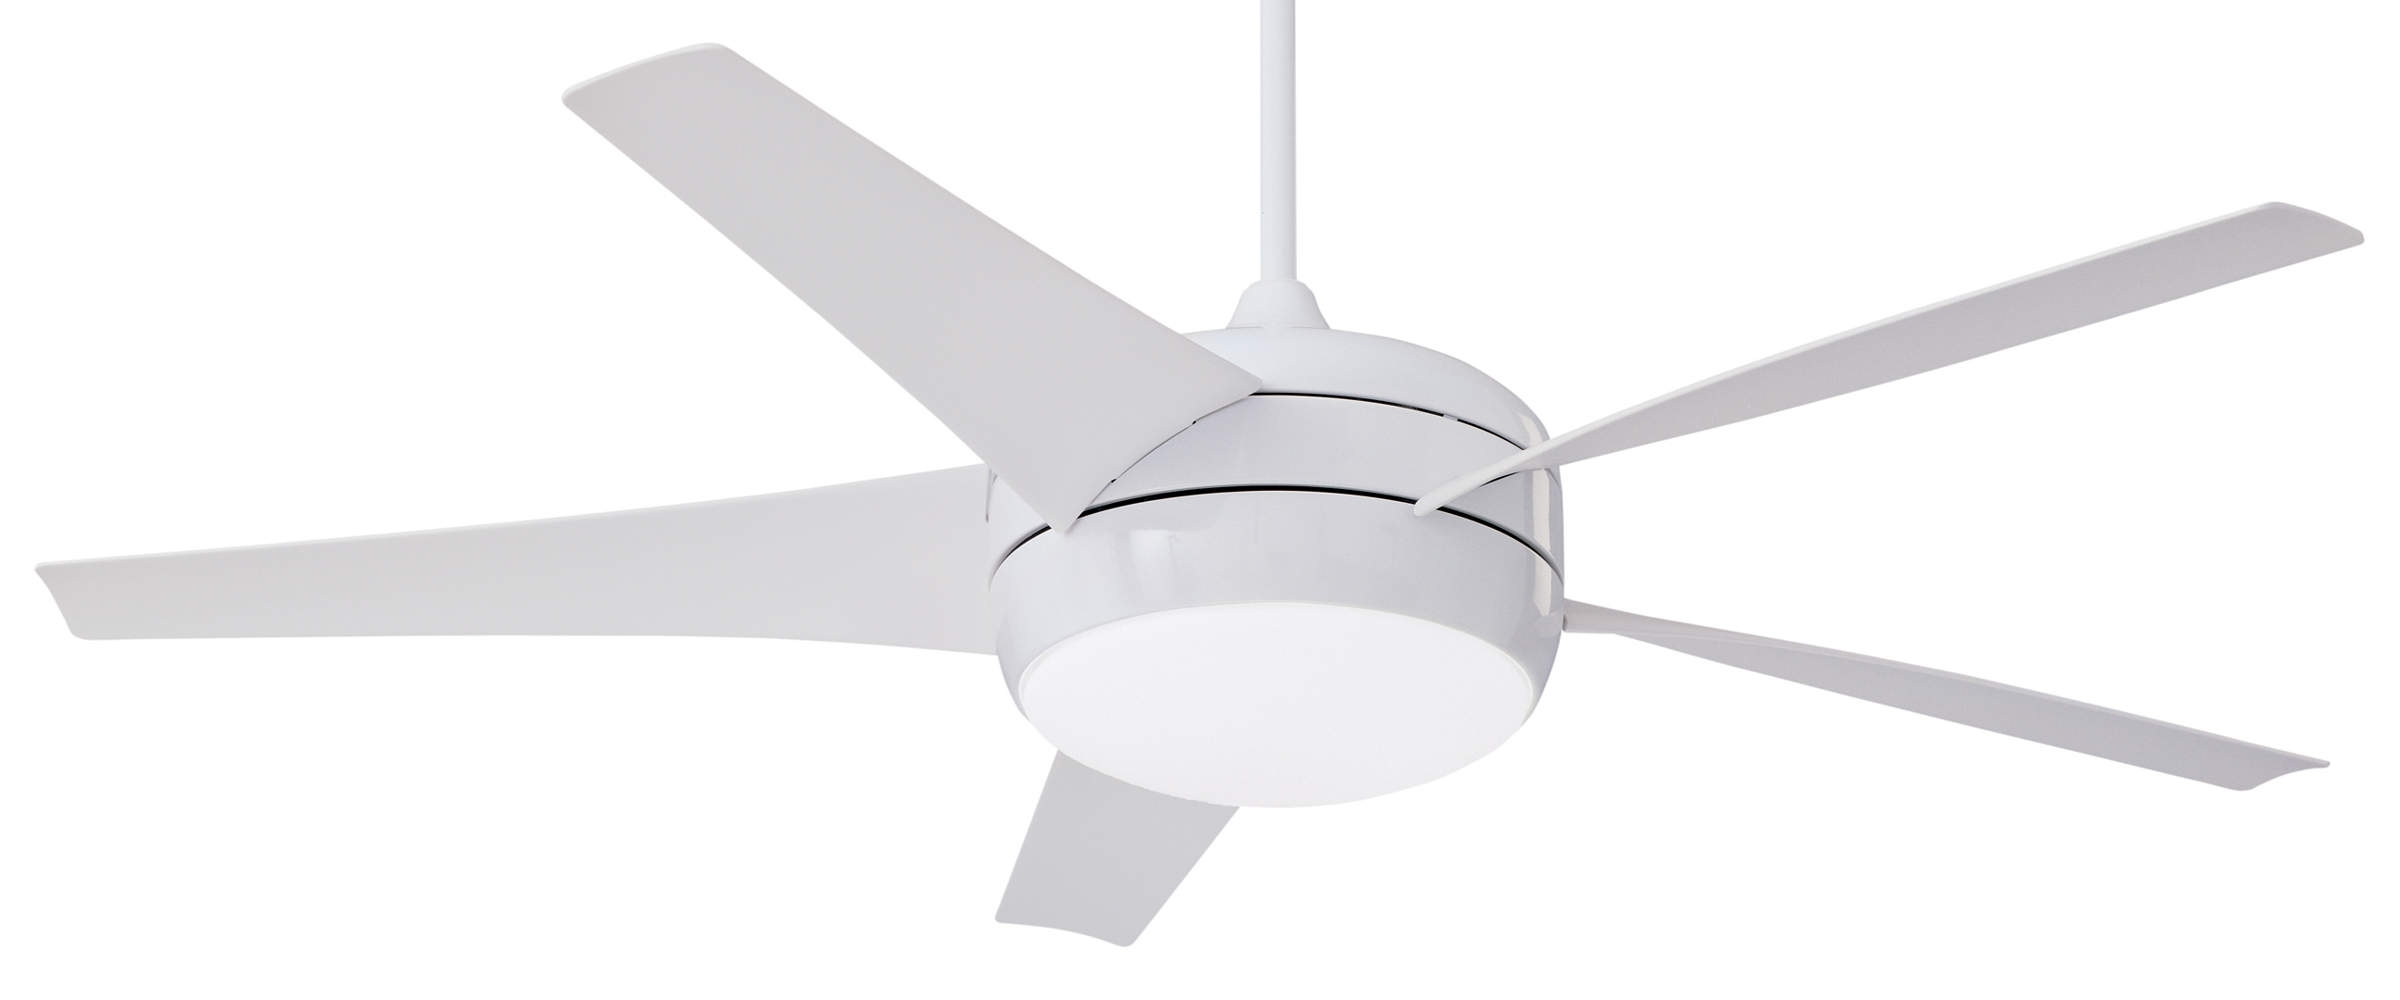 Emerson Midway Eco Dc Motor Ceiling Fan Cfww In Gloss White With With Regard To Most Up To Date Outdoor Ceiling Fans With Dc Motors (View 5 of 20)